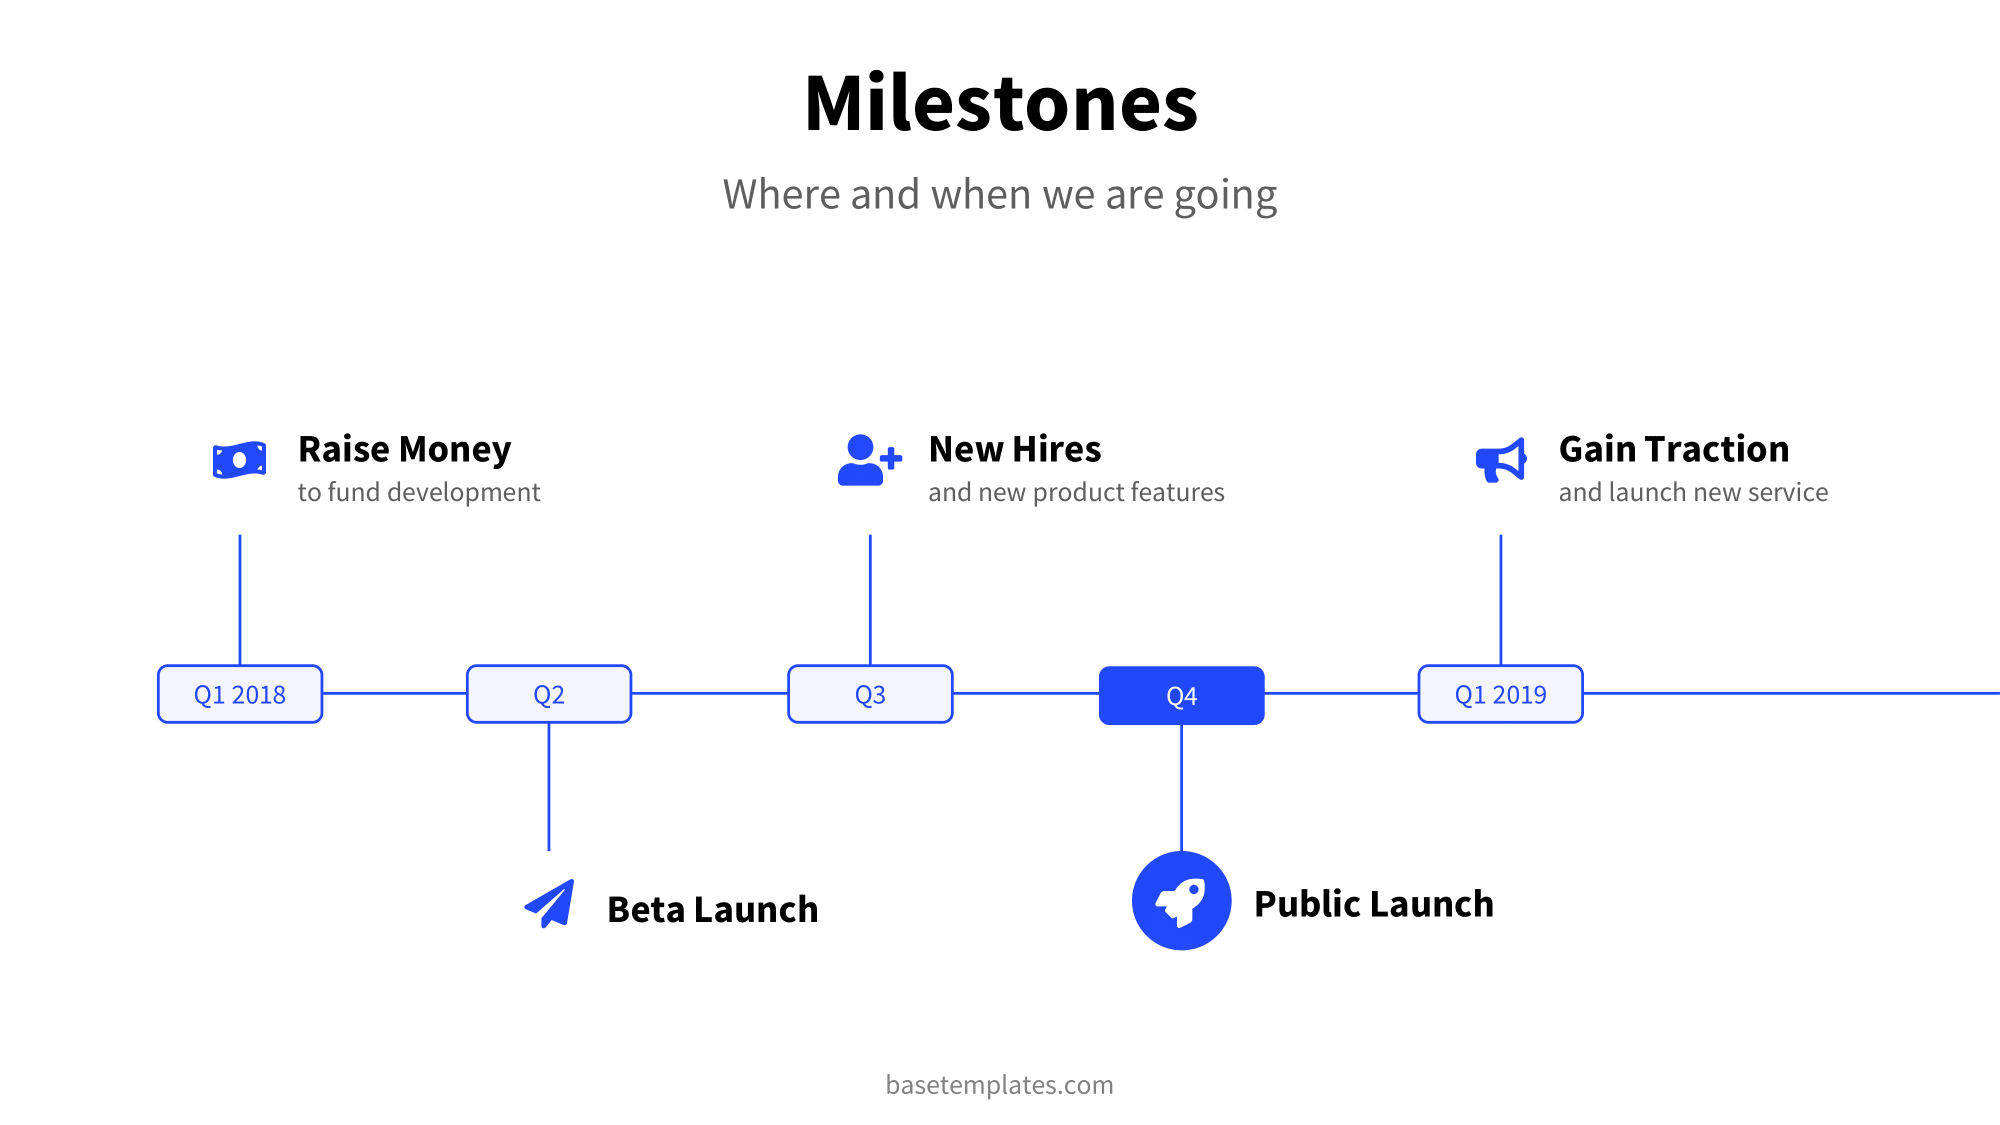 Milestone slide example in clean blue design with less information